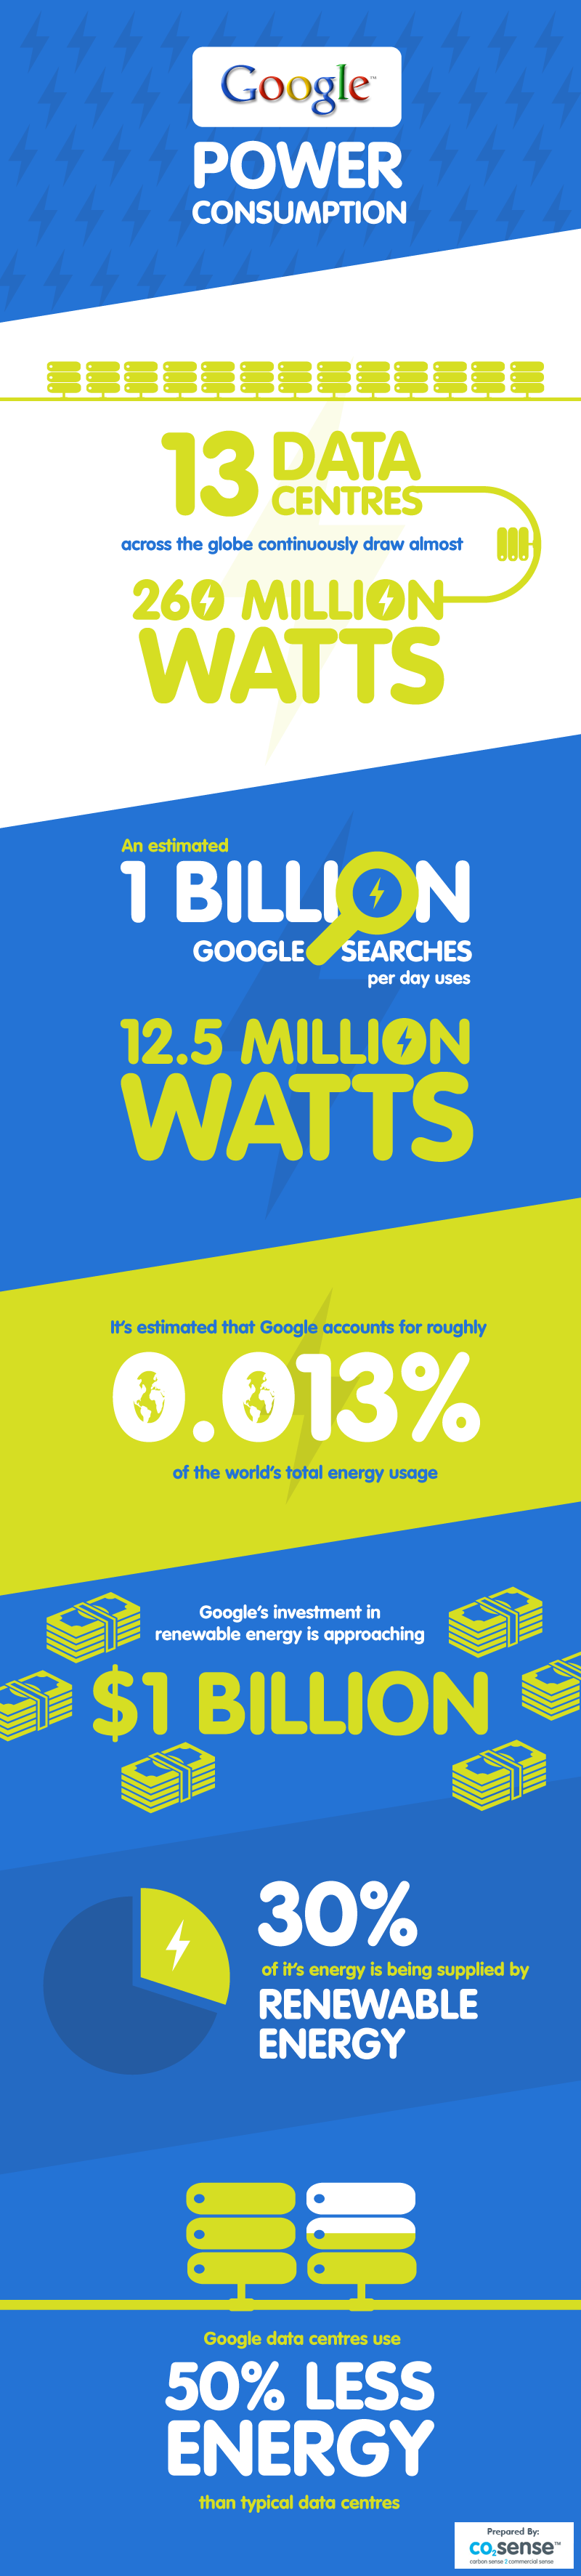 How much energy does Google use - infographic